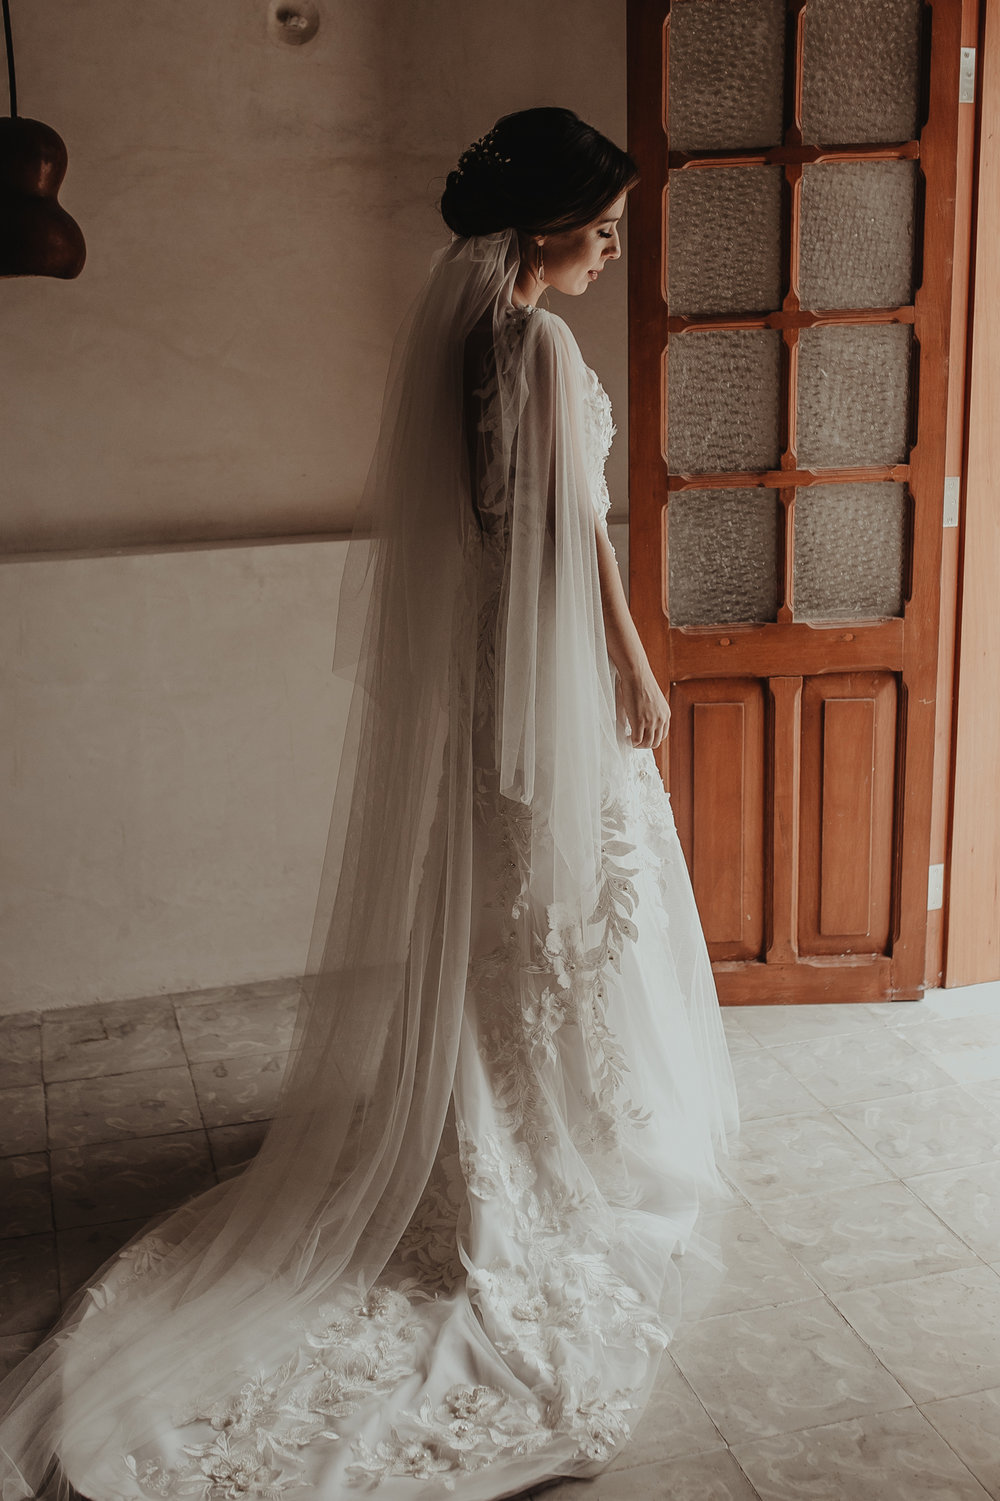 0028p&a_Hacienda__WeddingDestination_Weddingmerida_BodaMexico_FotografoDeBodas_WeddingGay.jpg